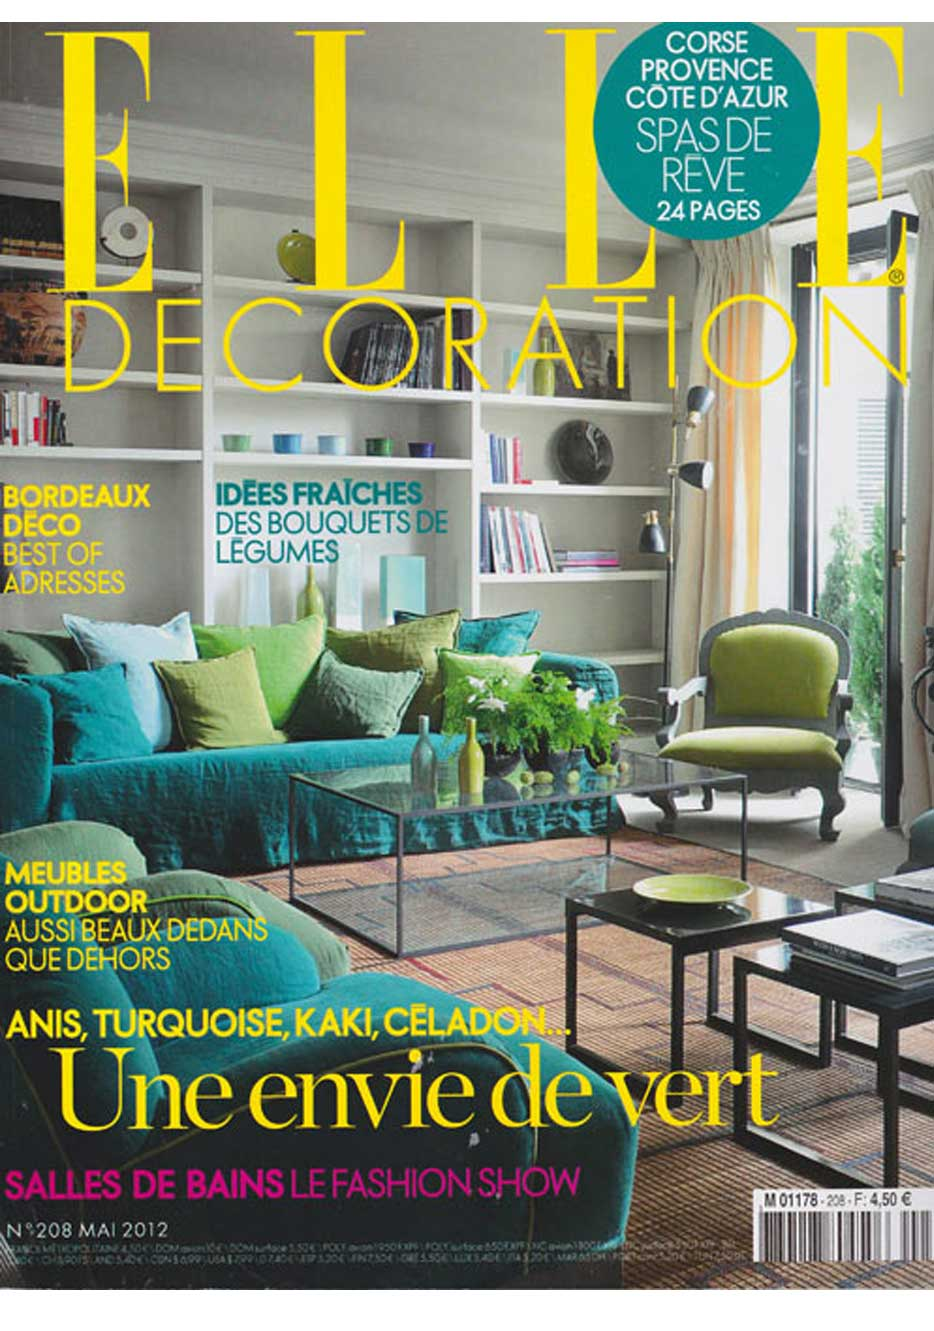 Article about Amaury Poudray in Elle Décoration